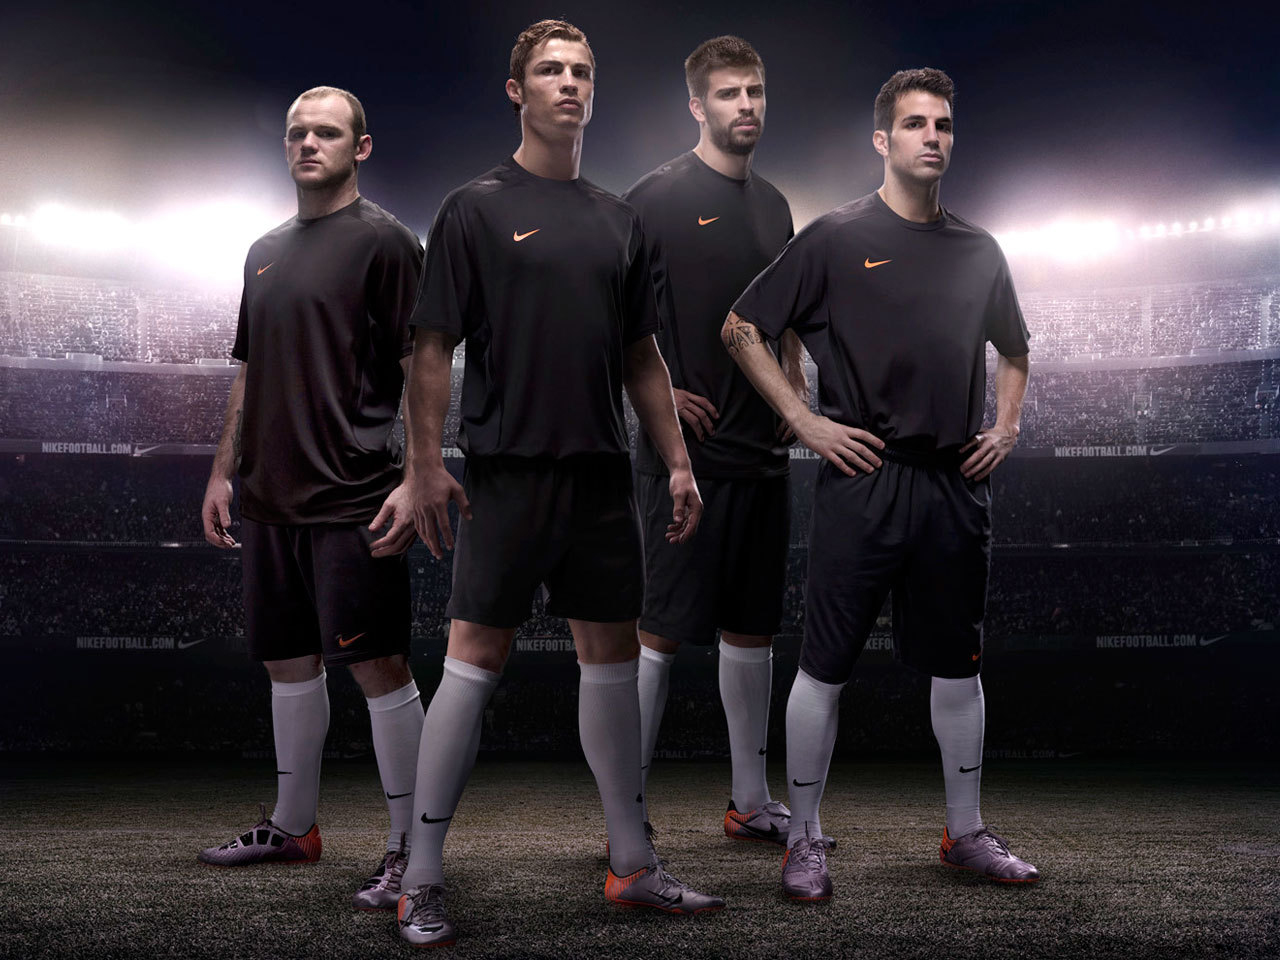 Nike Football Wallpaper wallpaper Nike Football Wallpaper hd 1280x960